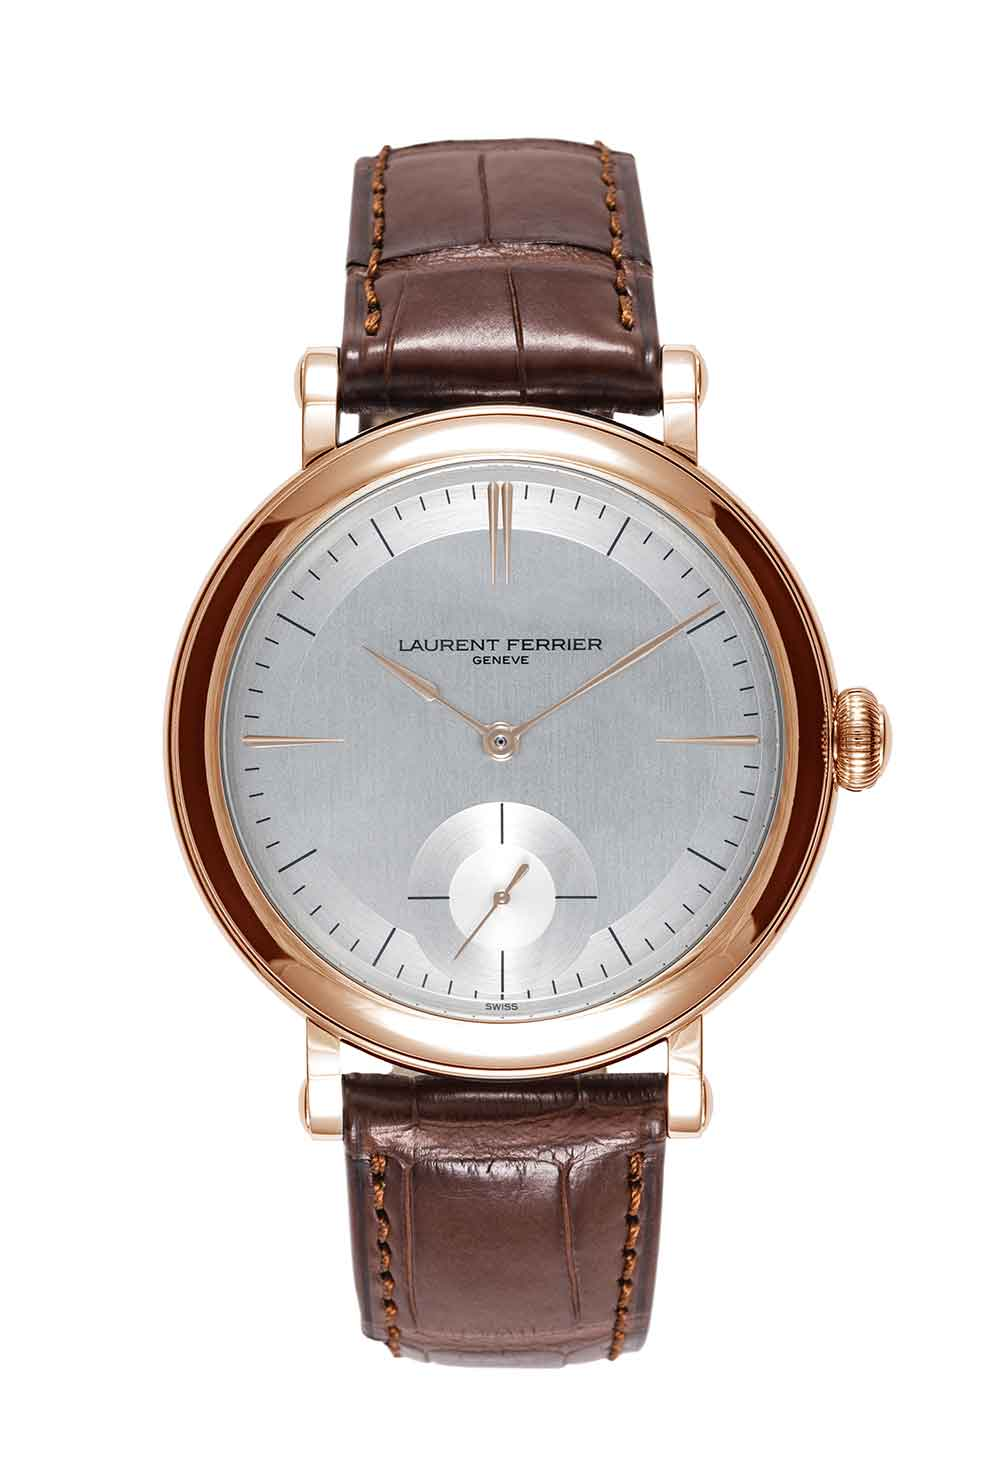 Laurent Ferrier Galet Micro-Rotor Montre Ecole red gold